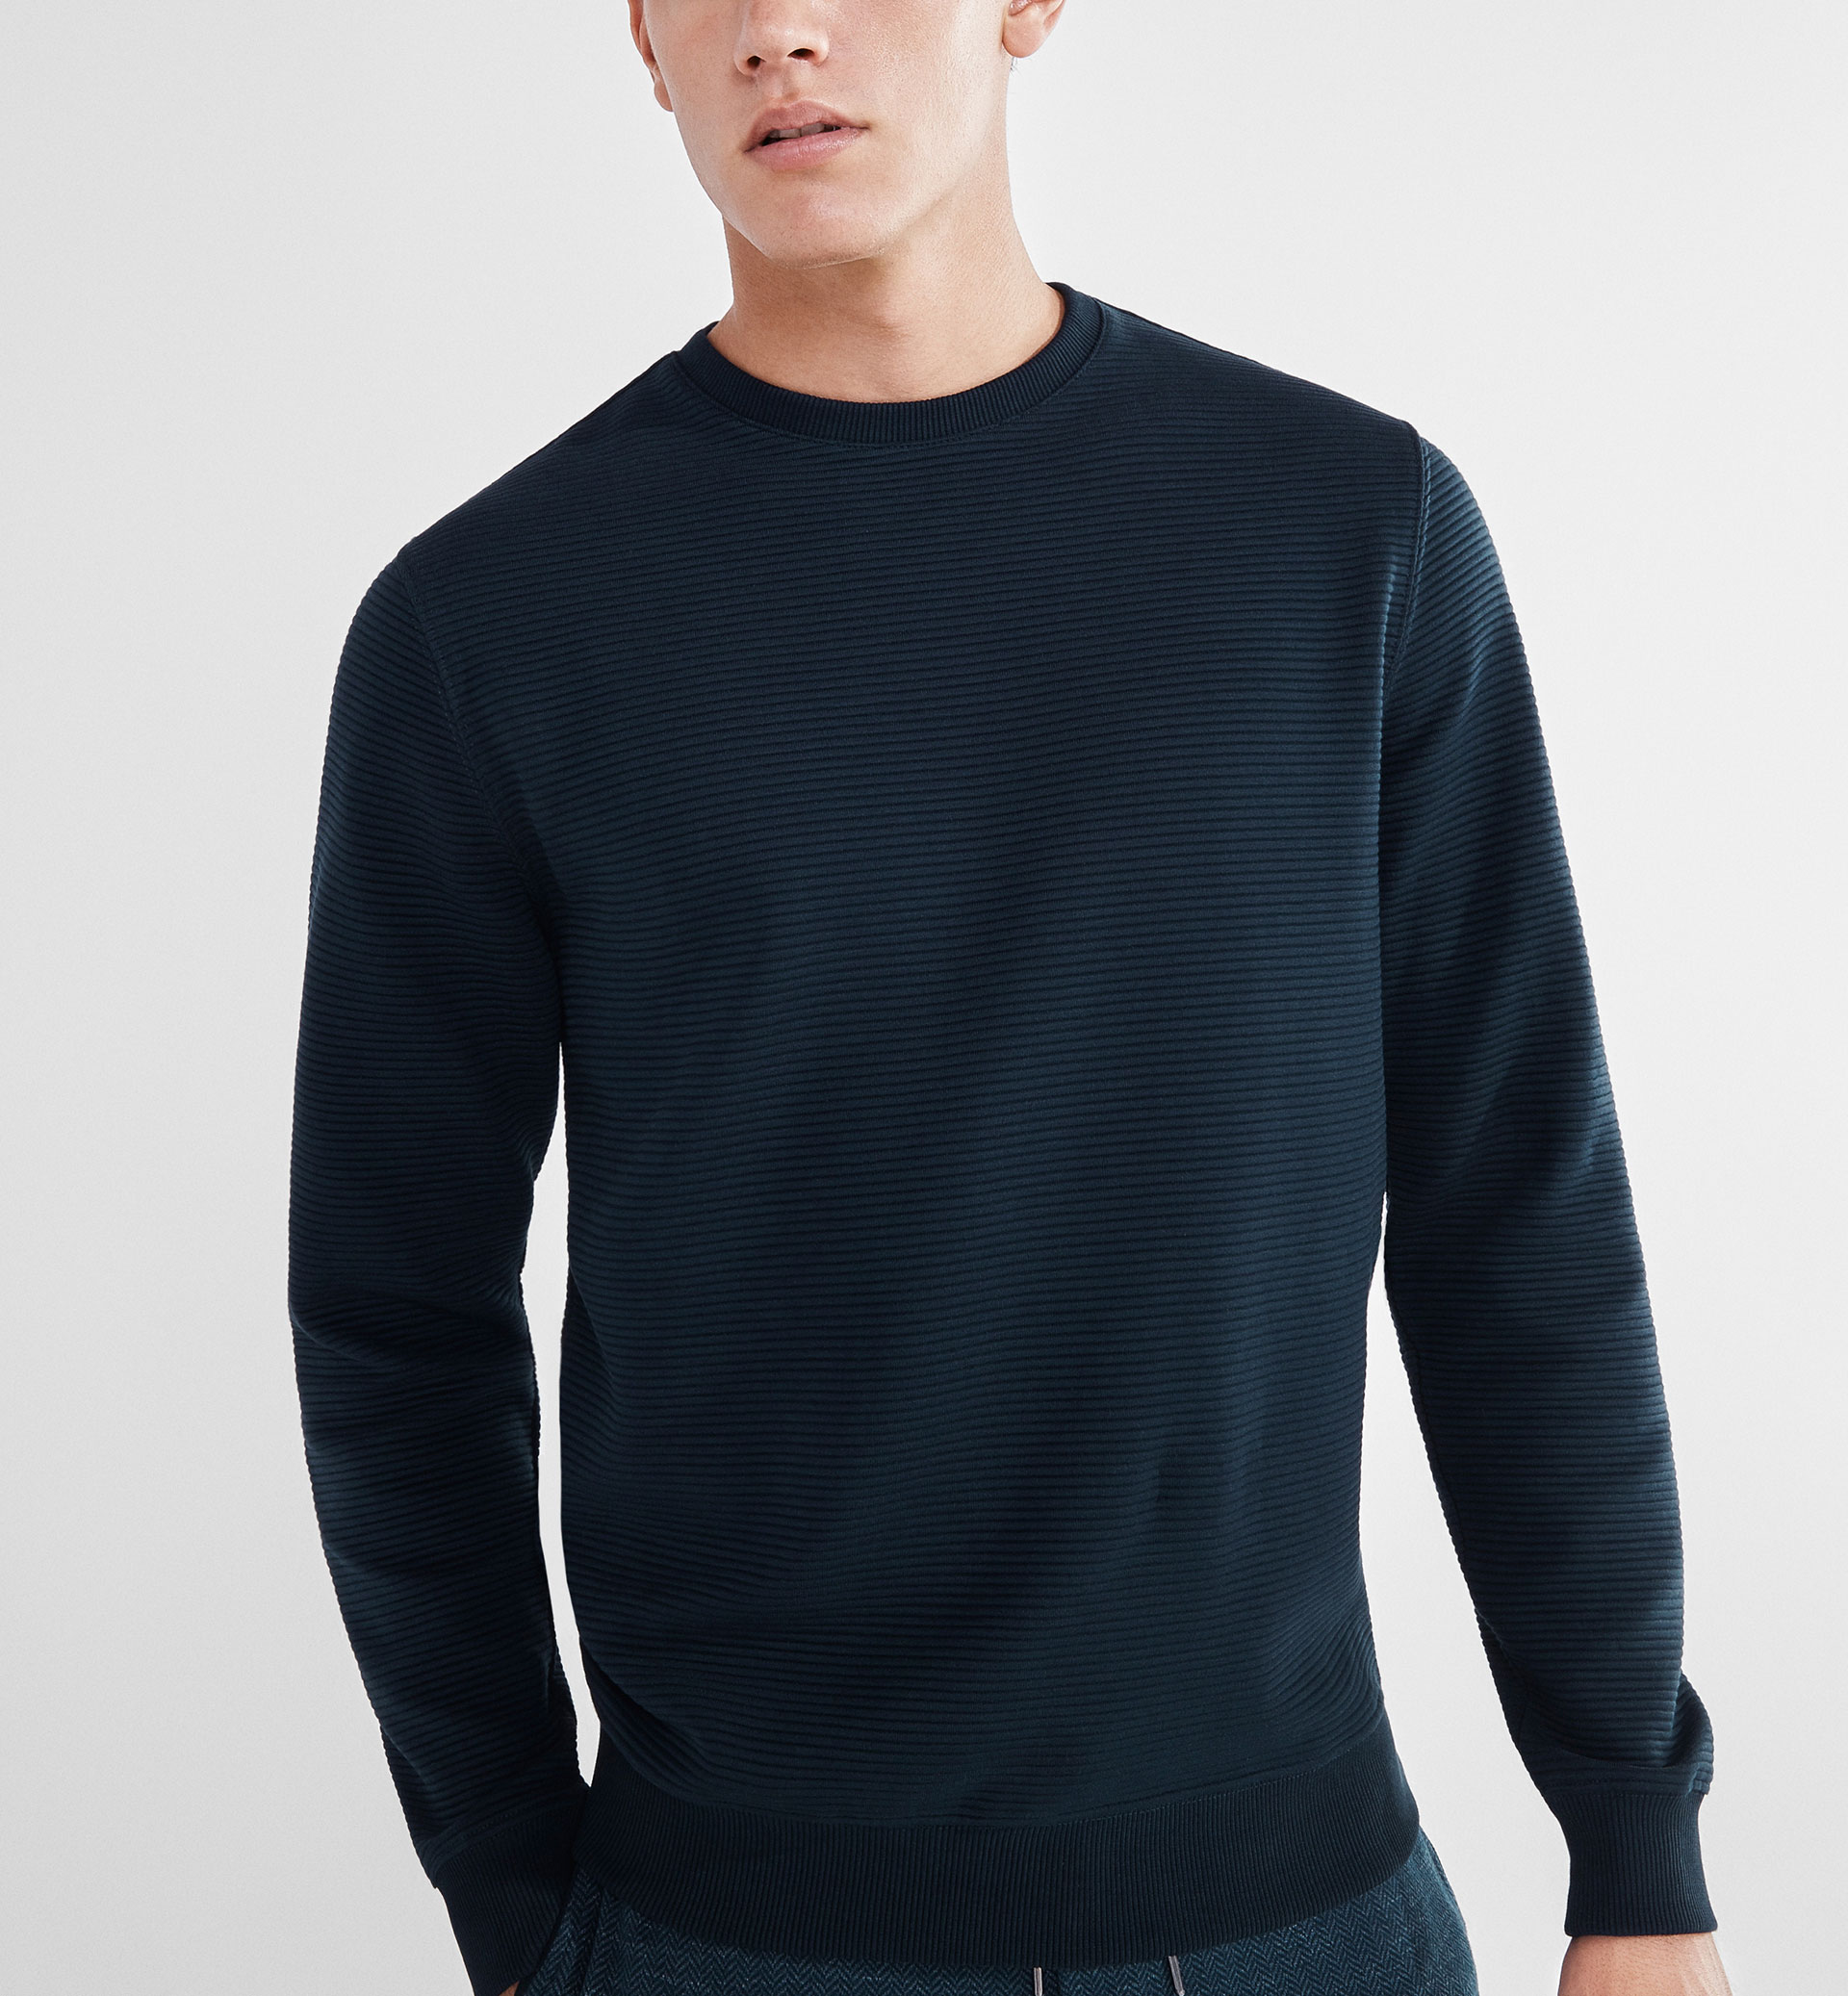 SOFT TEXTURED SWEATSHIRT